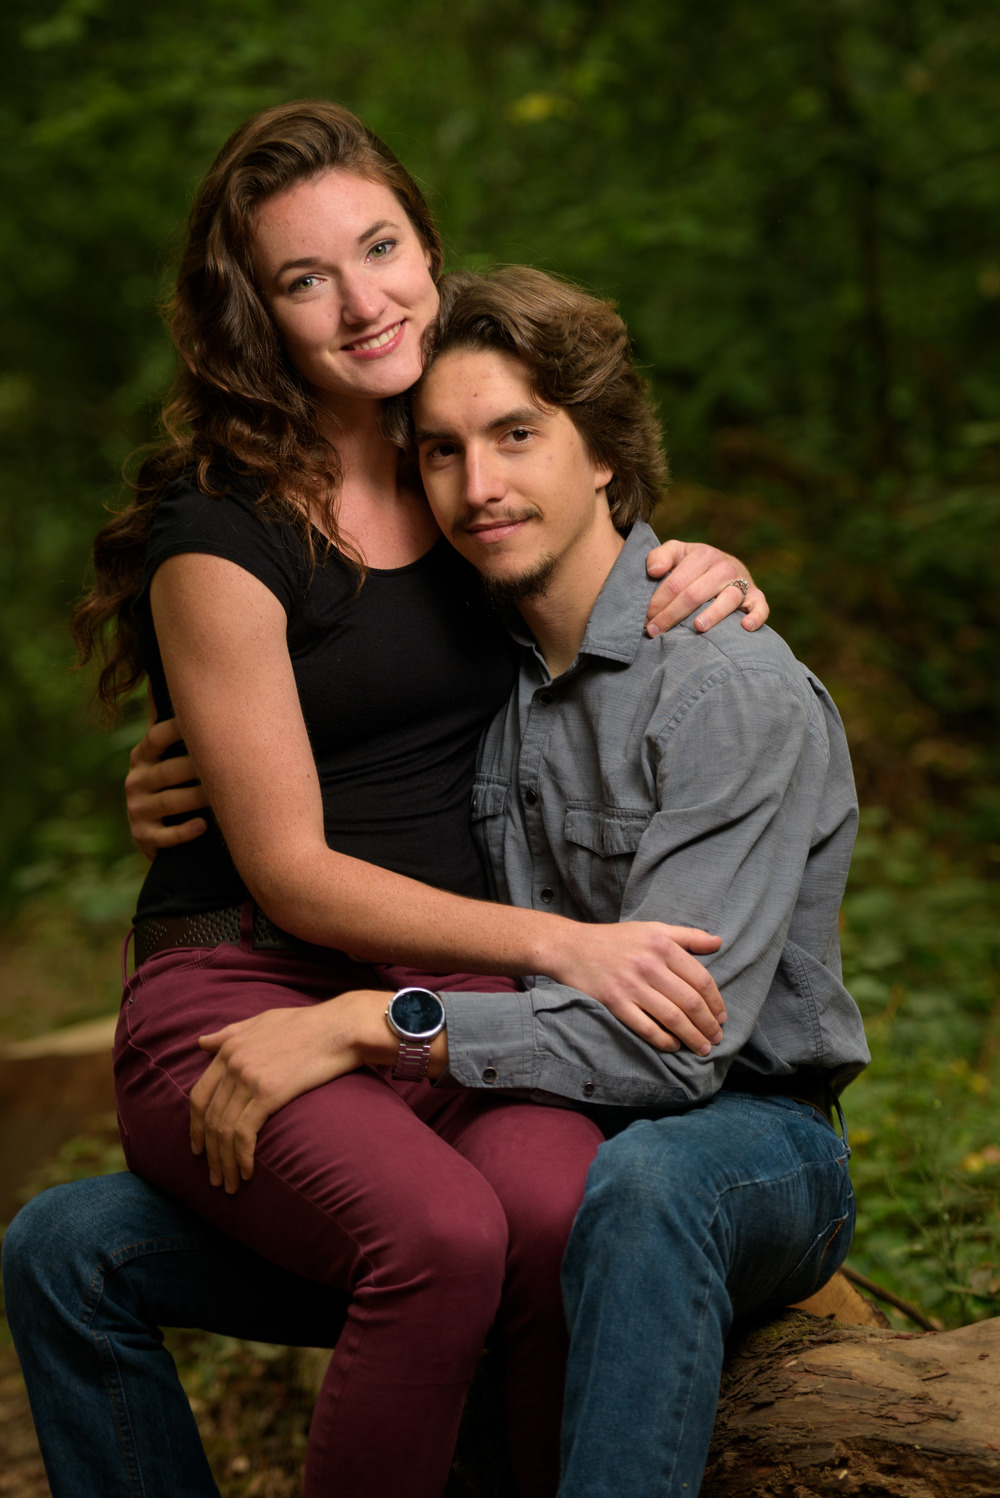 Couple looking at camera while sitting on a log in the forest - Engagement Photos in Nisene Marks Forest in Aptos, CA - by Bay Area wedding photographer Chris Schmauch